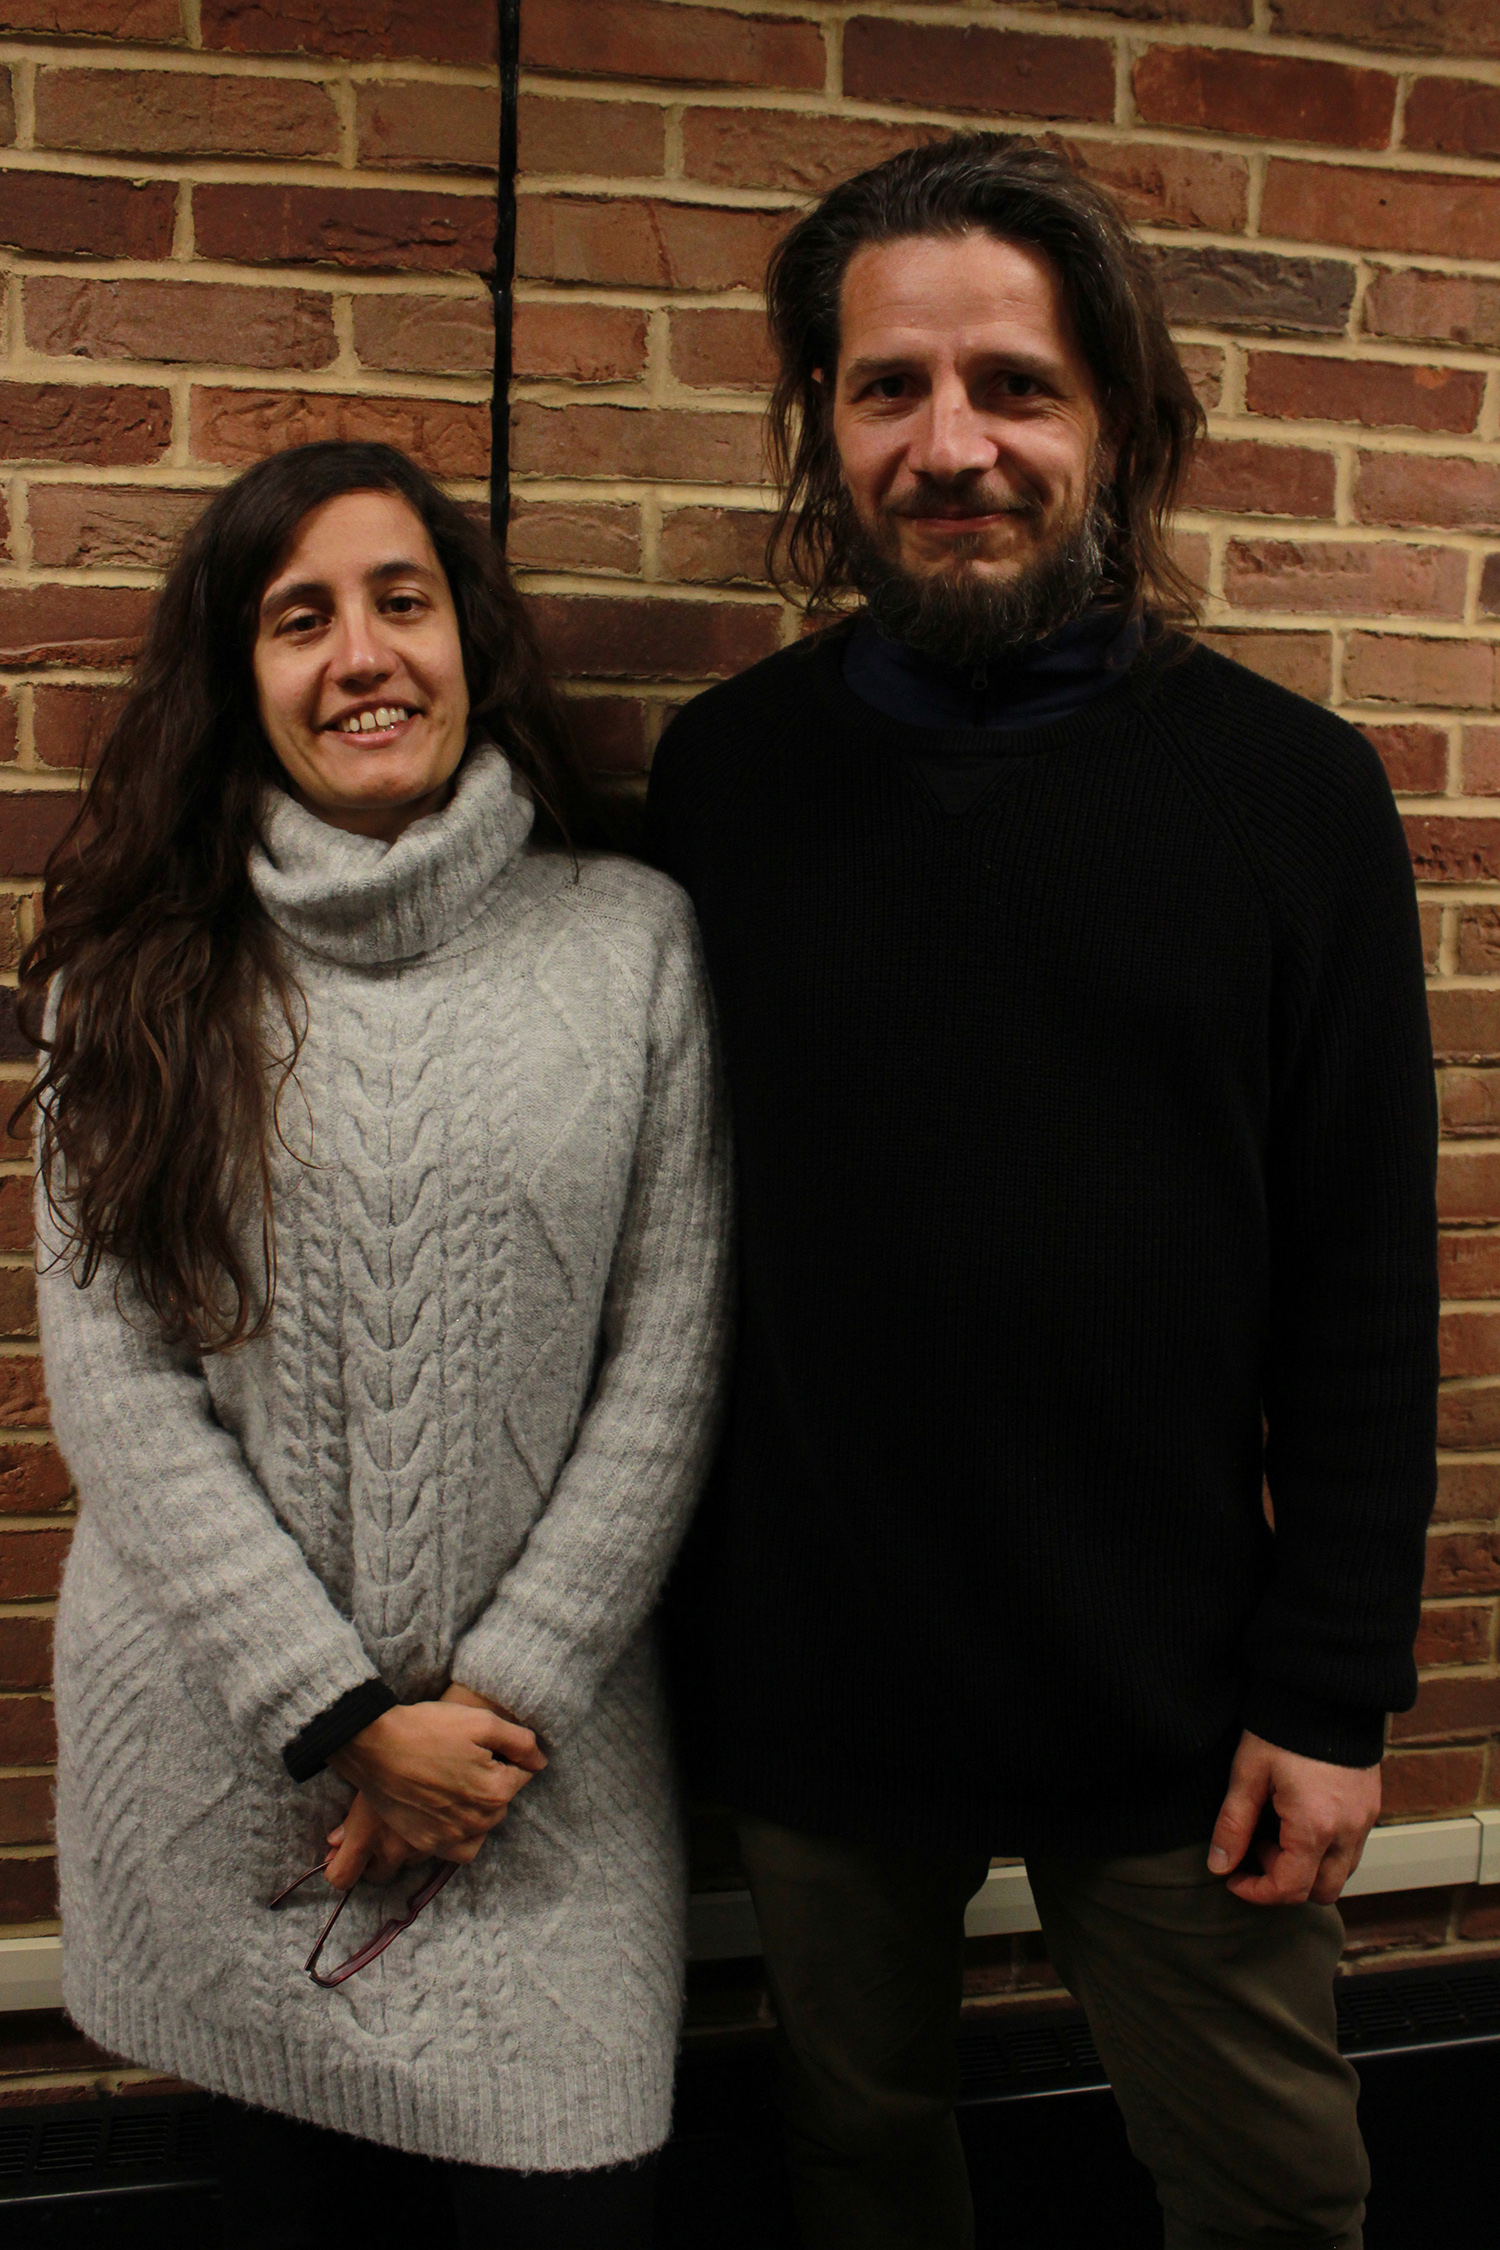 Agustina Altman and Alejandro López pose in library